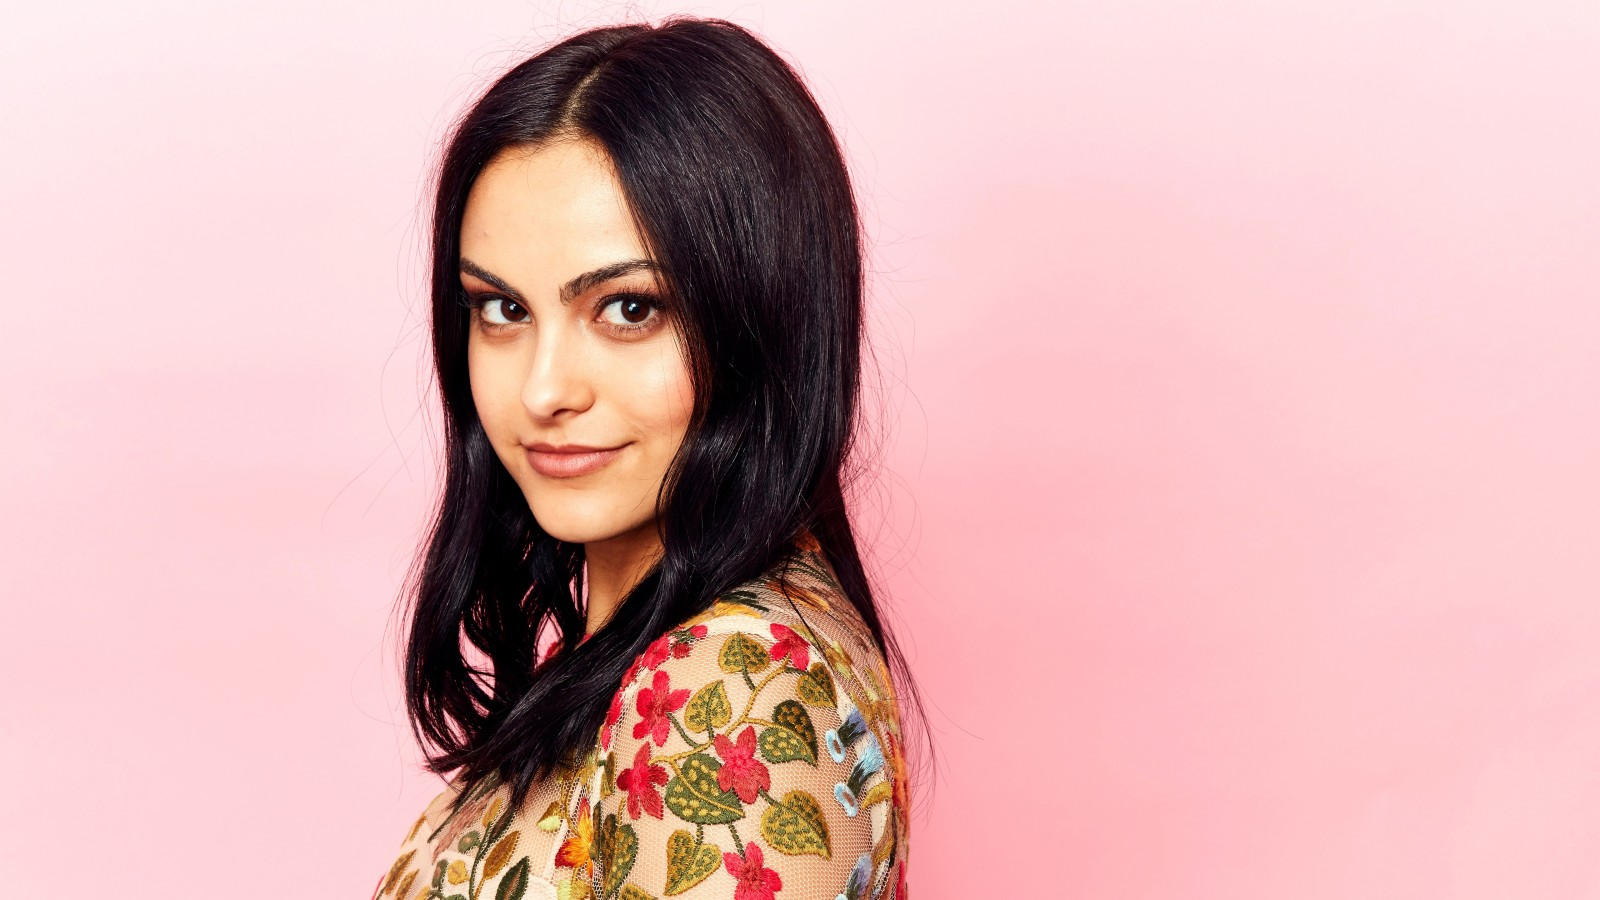 Bad Girl Quotes Wallpaper Camila Mendes 4k Wallpapers Hd Wallpapers Id 21940